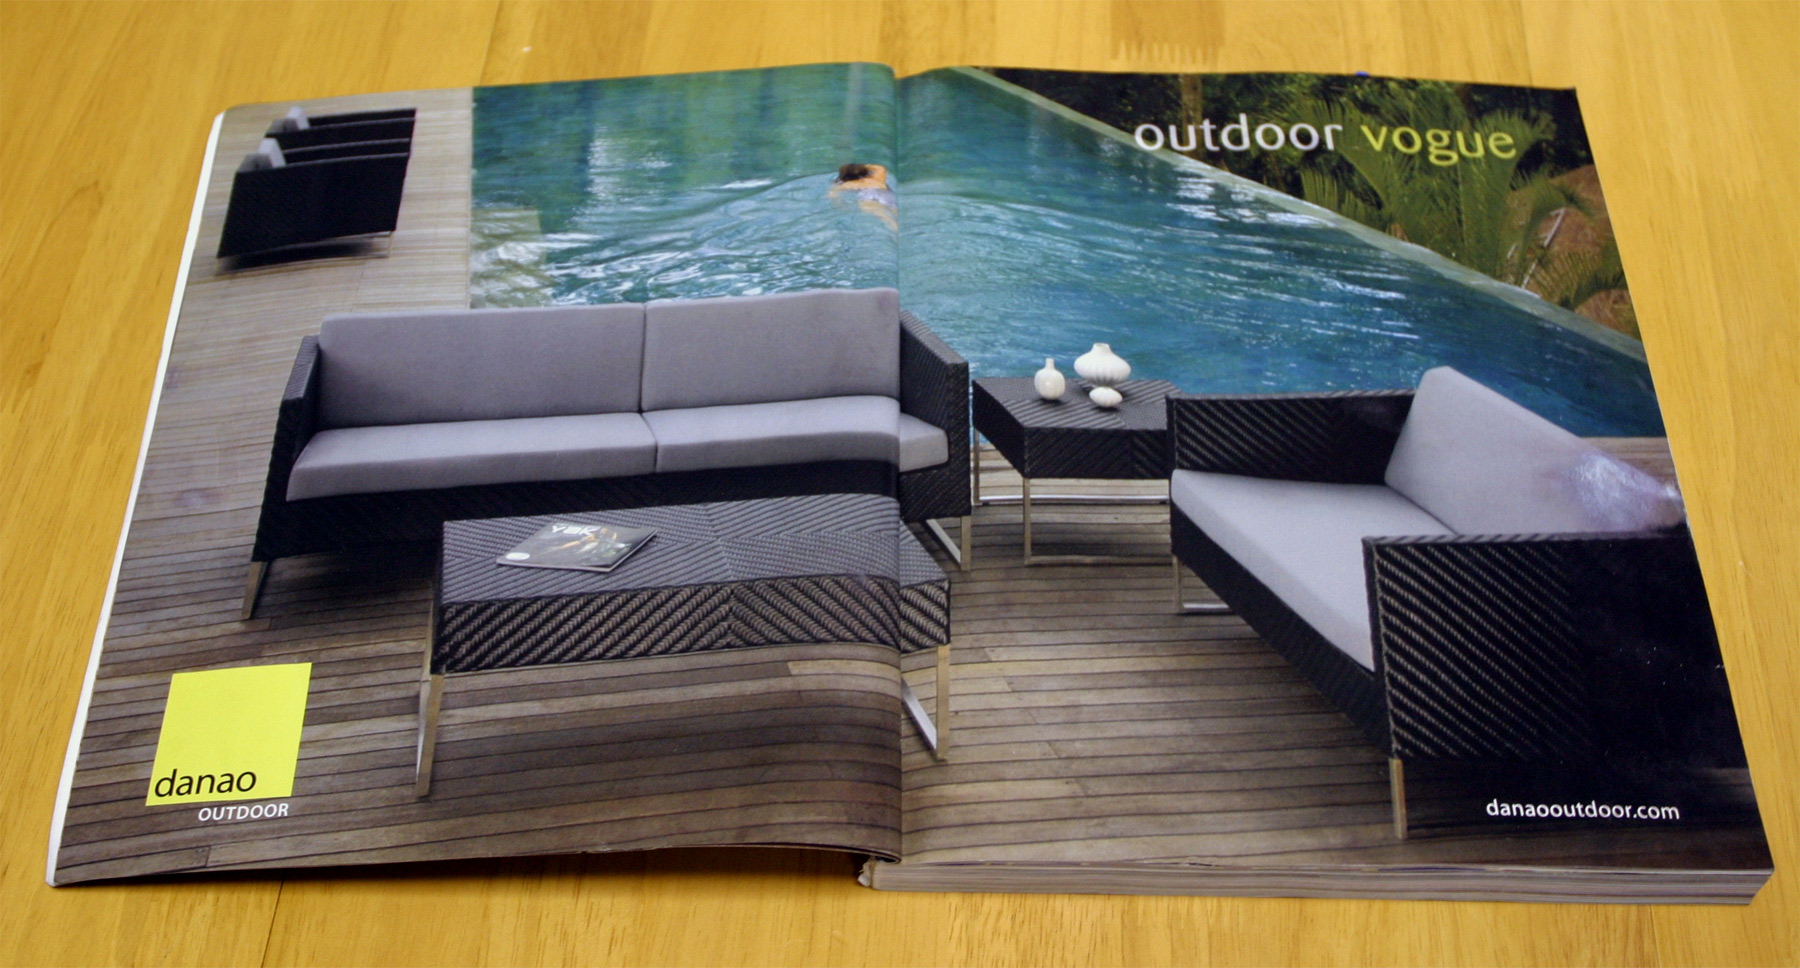 Weu0027ve Been Working With A Furniture Design Company Called Danao Outdoor For  A Few Years Now. Tornado Handles Their Print Ad Campaigns As Well As Other  ...